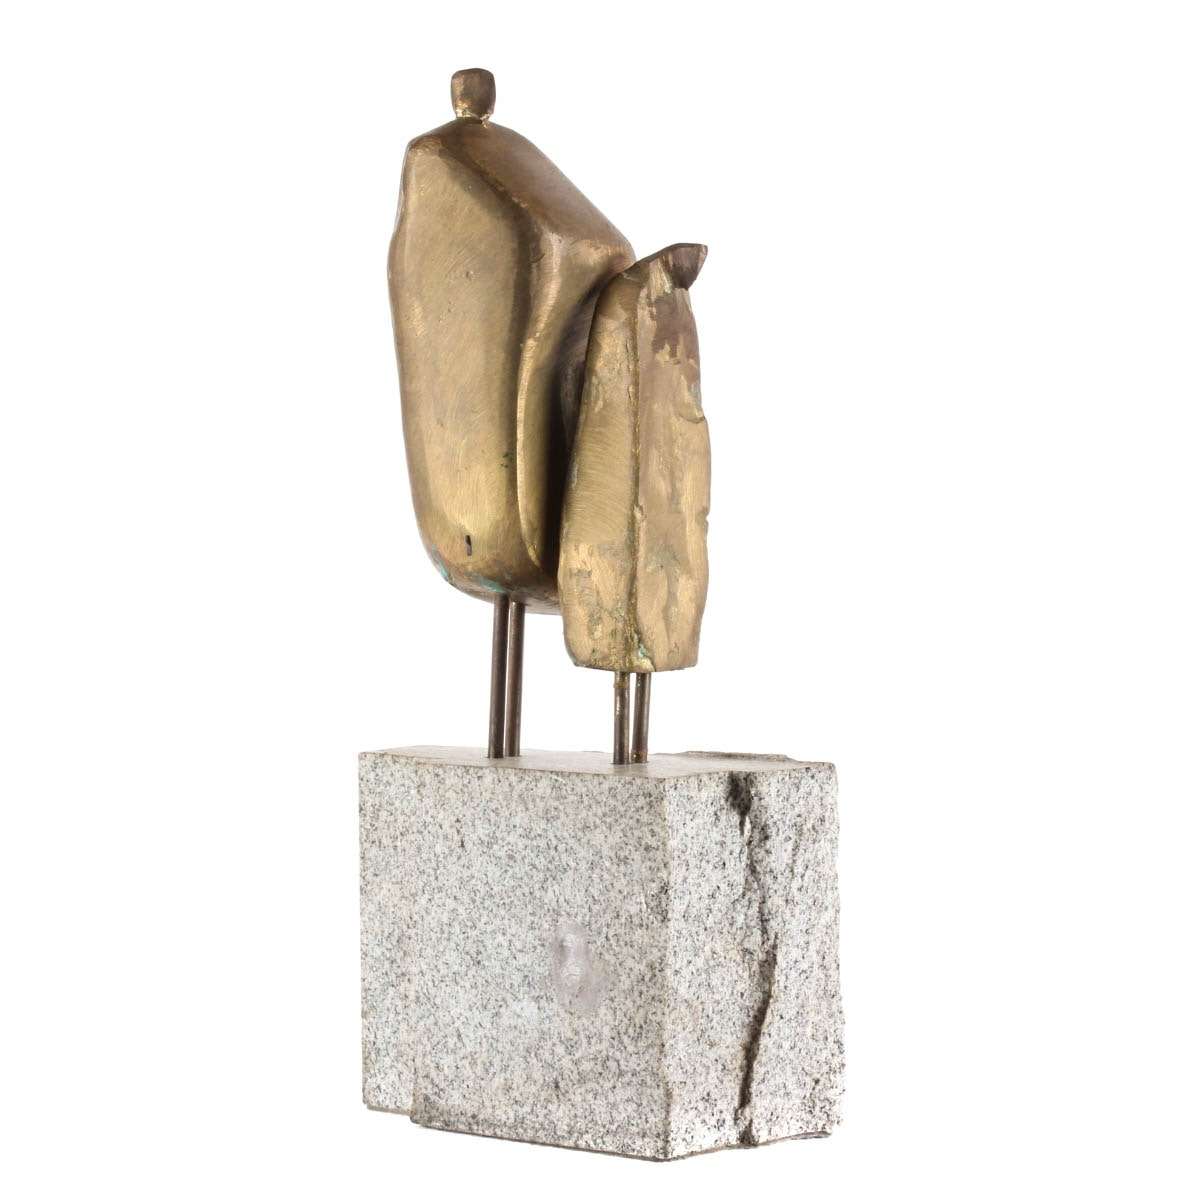 Bronze Figurative Sculpture